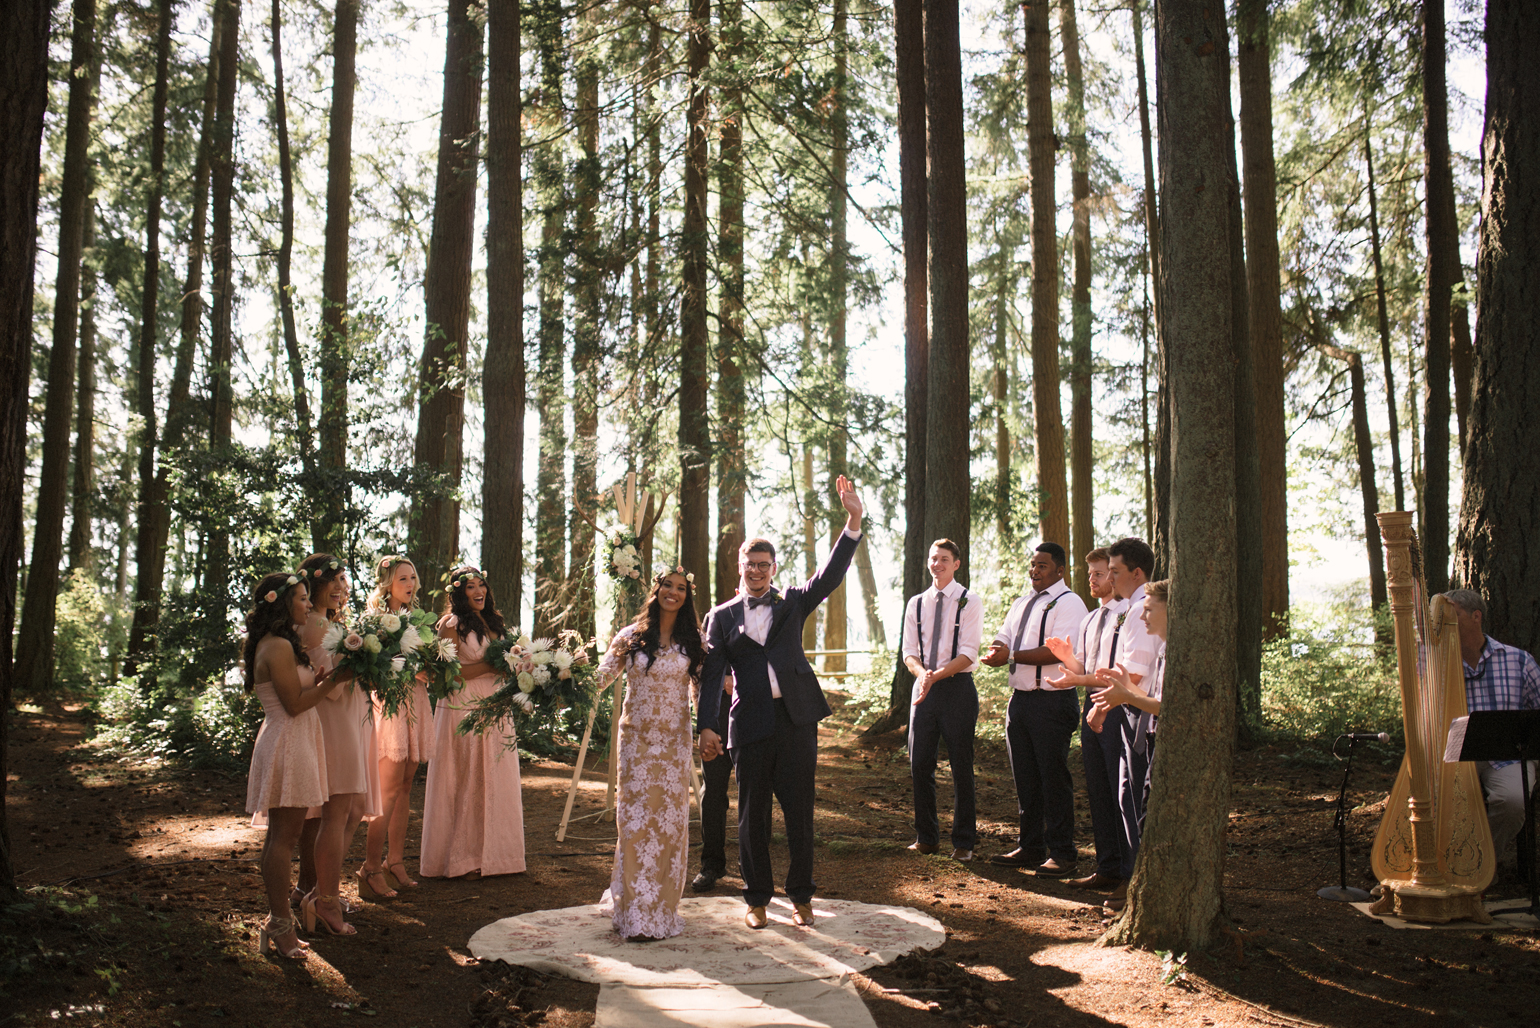 Kitsap Memorial State Park Wedding.Lindsey Spencer Kitsap Memorial State Park